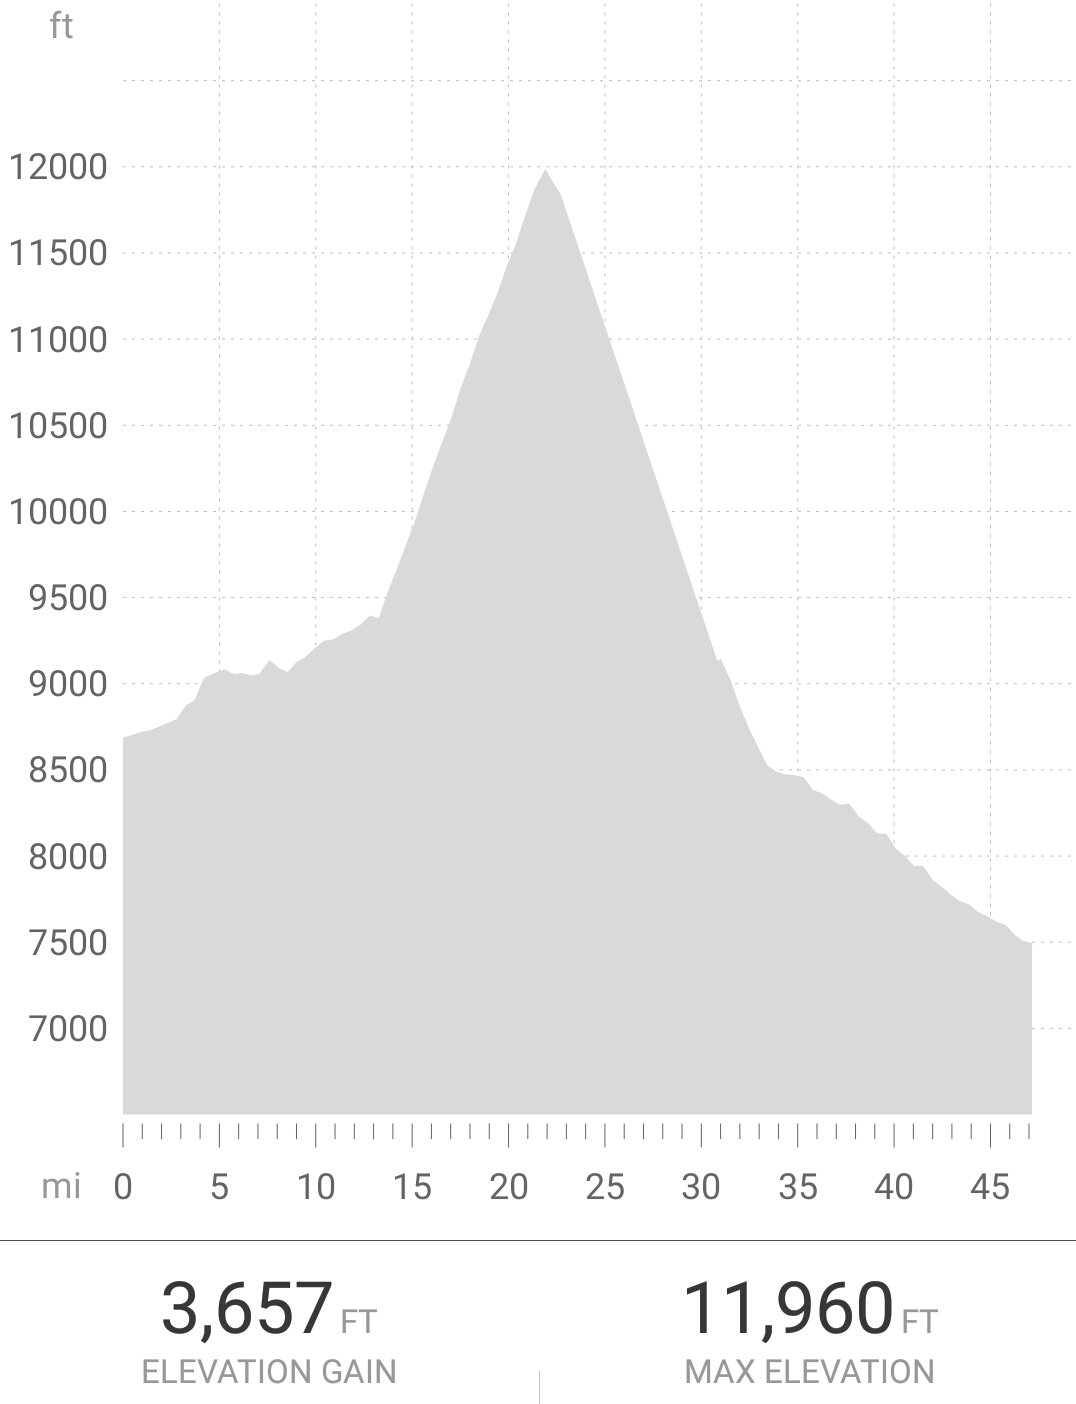 Cell phone turned off between mile 23 and 31, so elevation chart slightly distorted